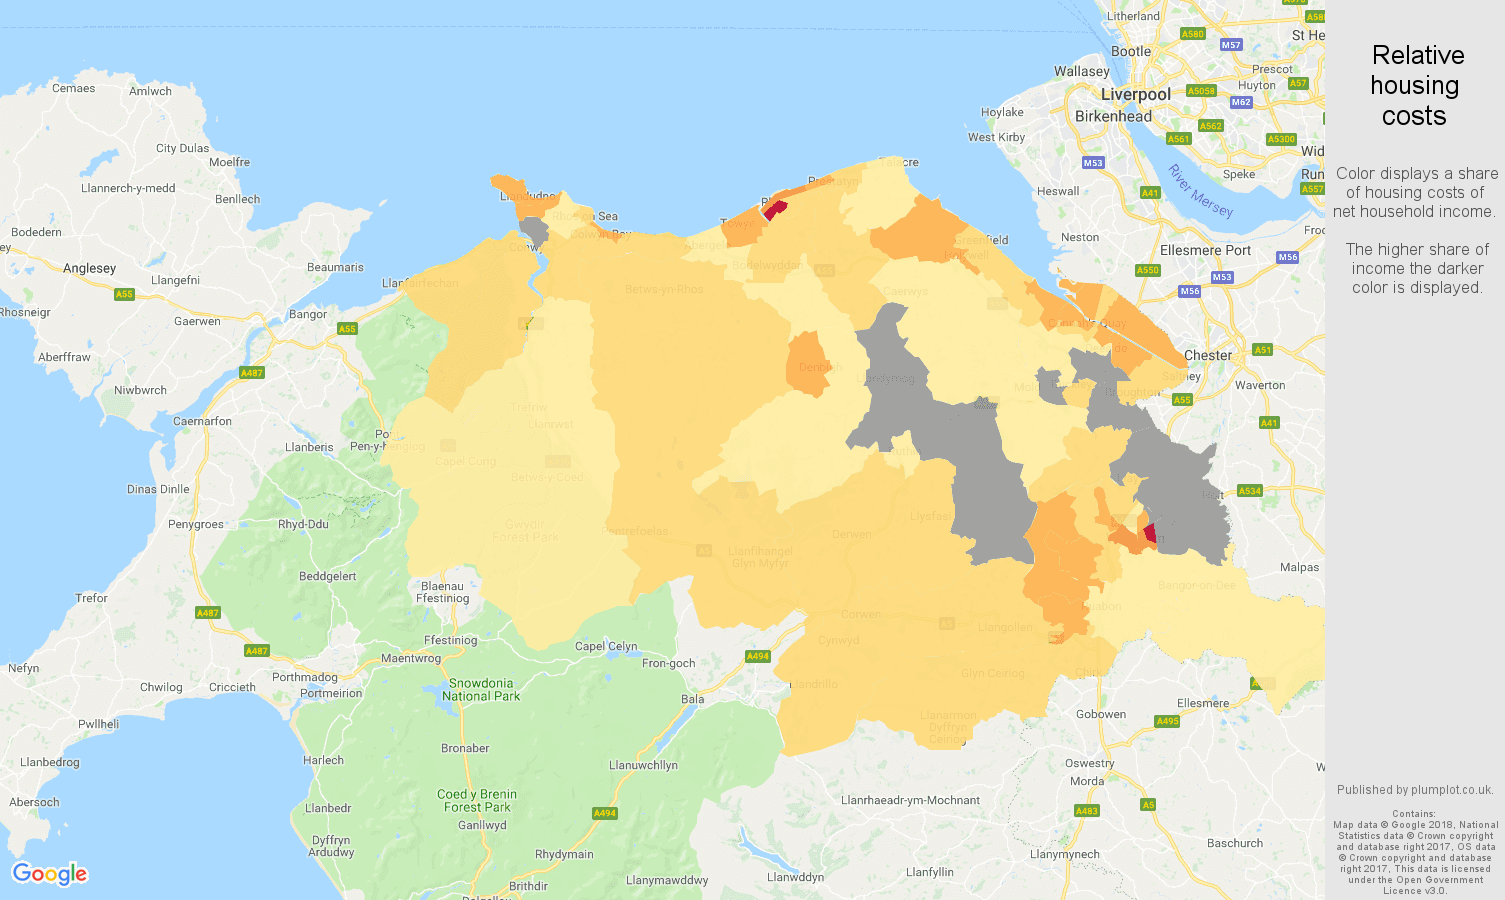 Clwyd relative housing costs map